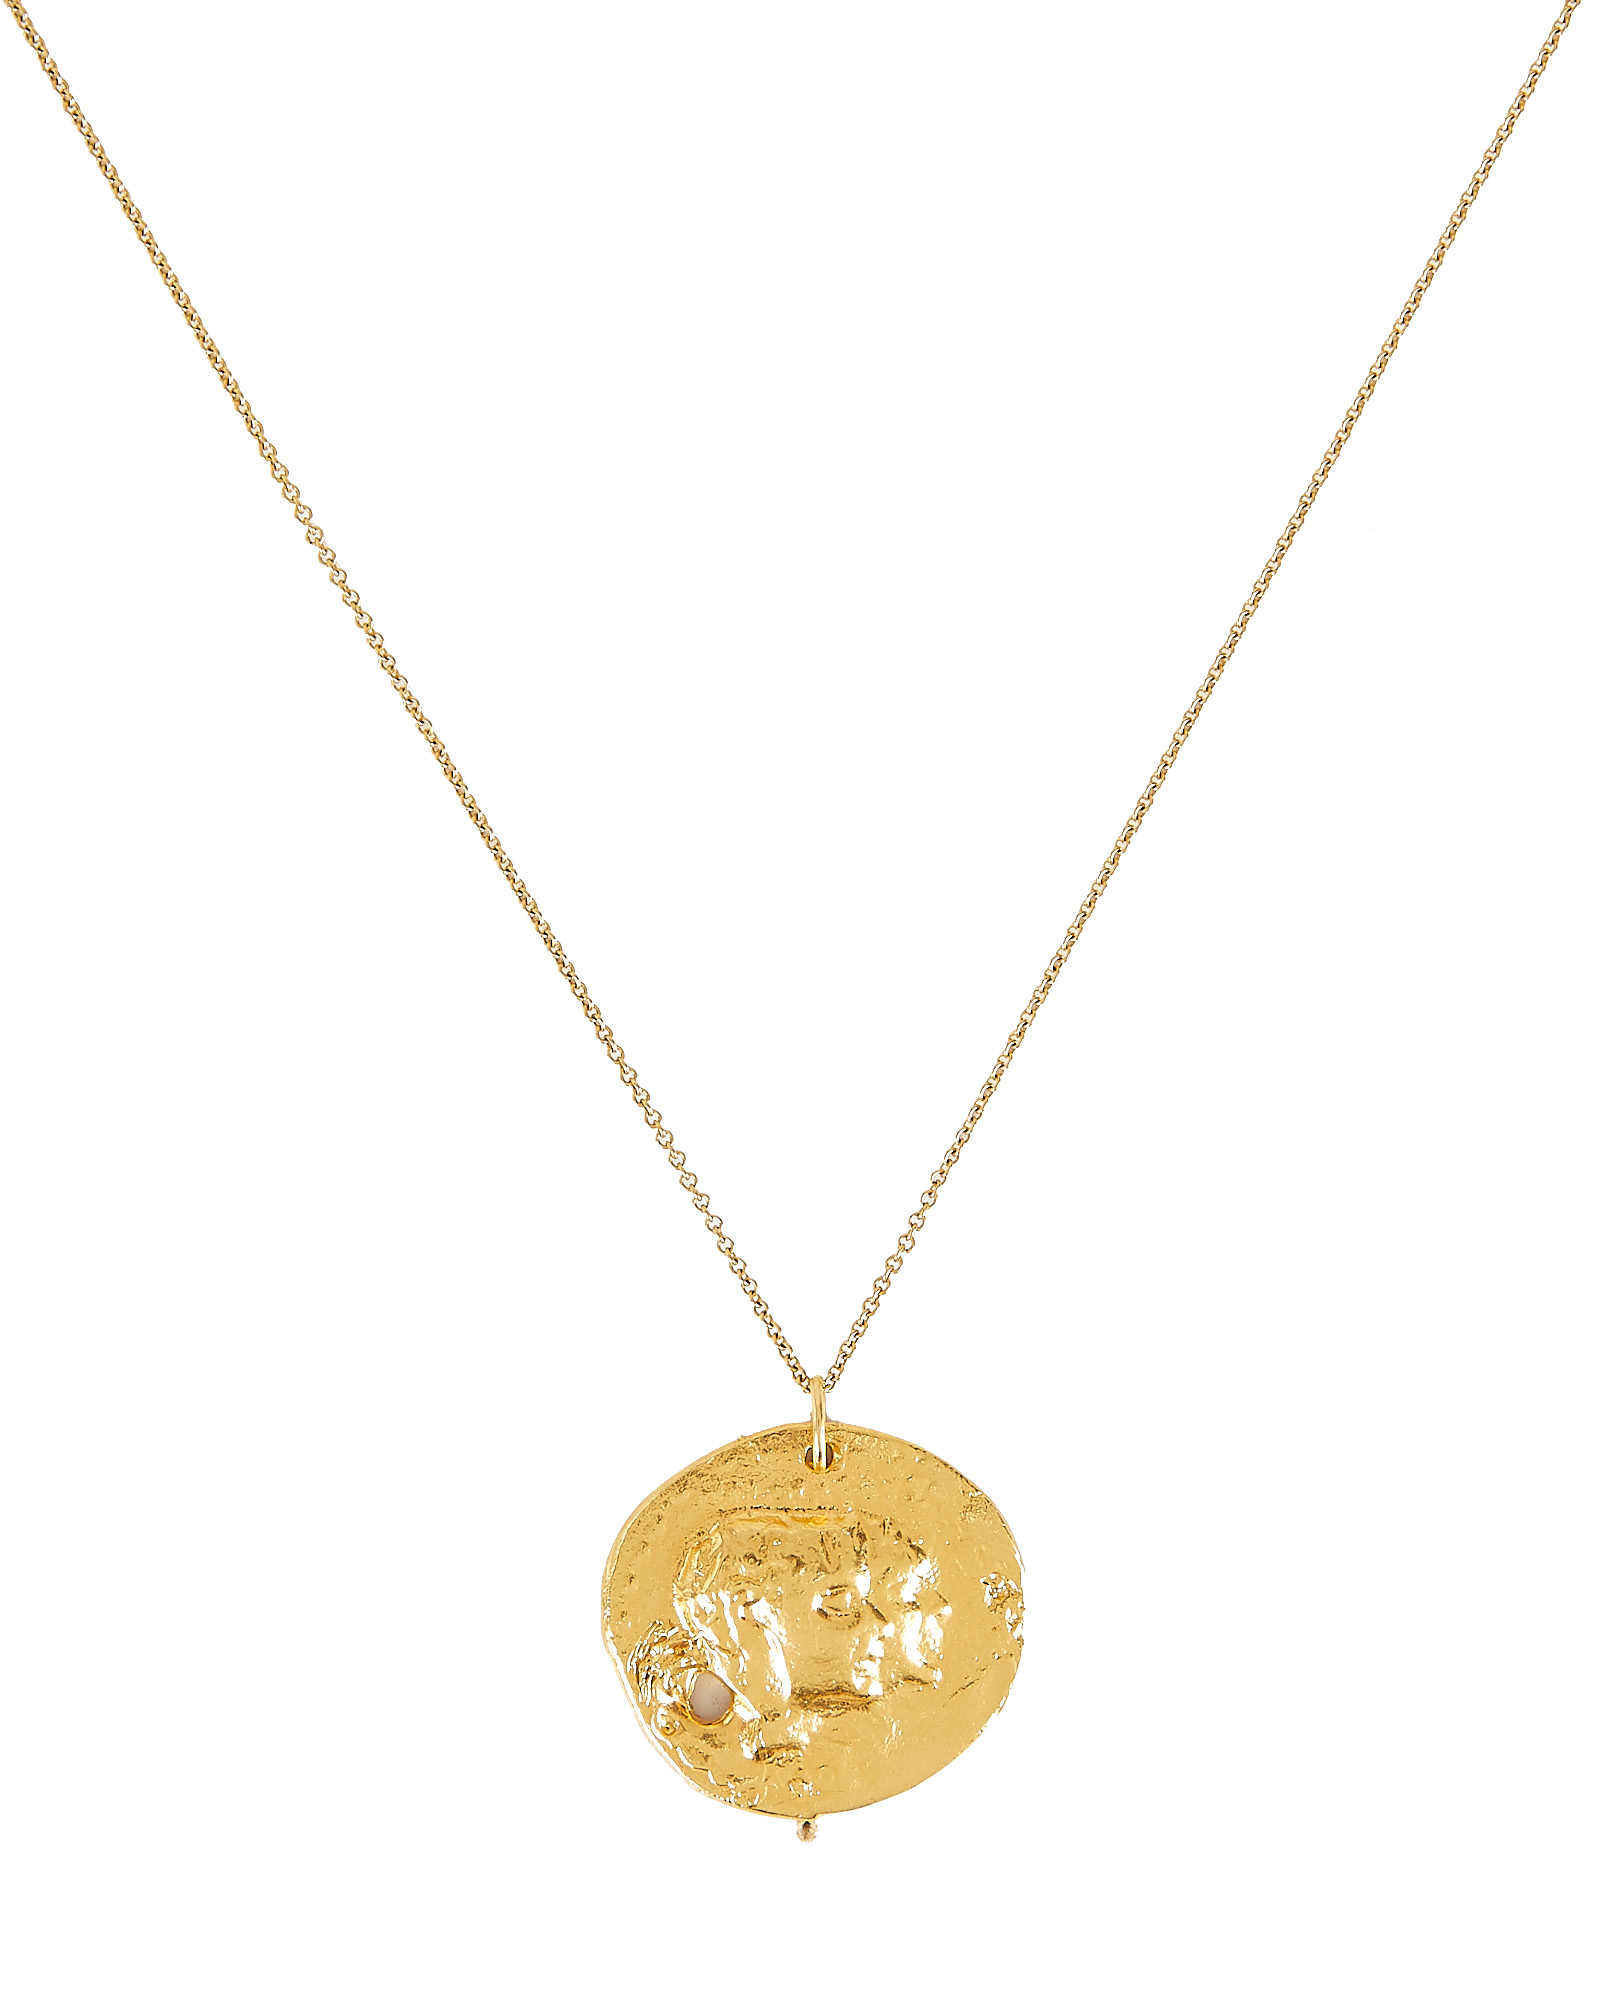 9d71915b0e378 The Other Side Of The World Necklace in Gold